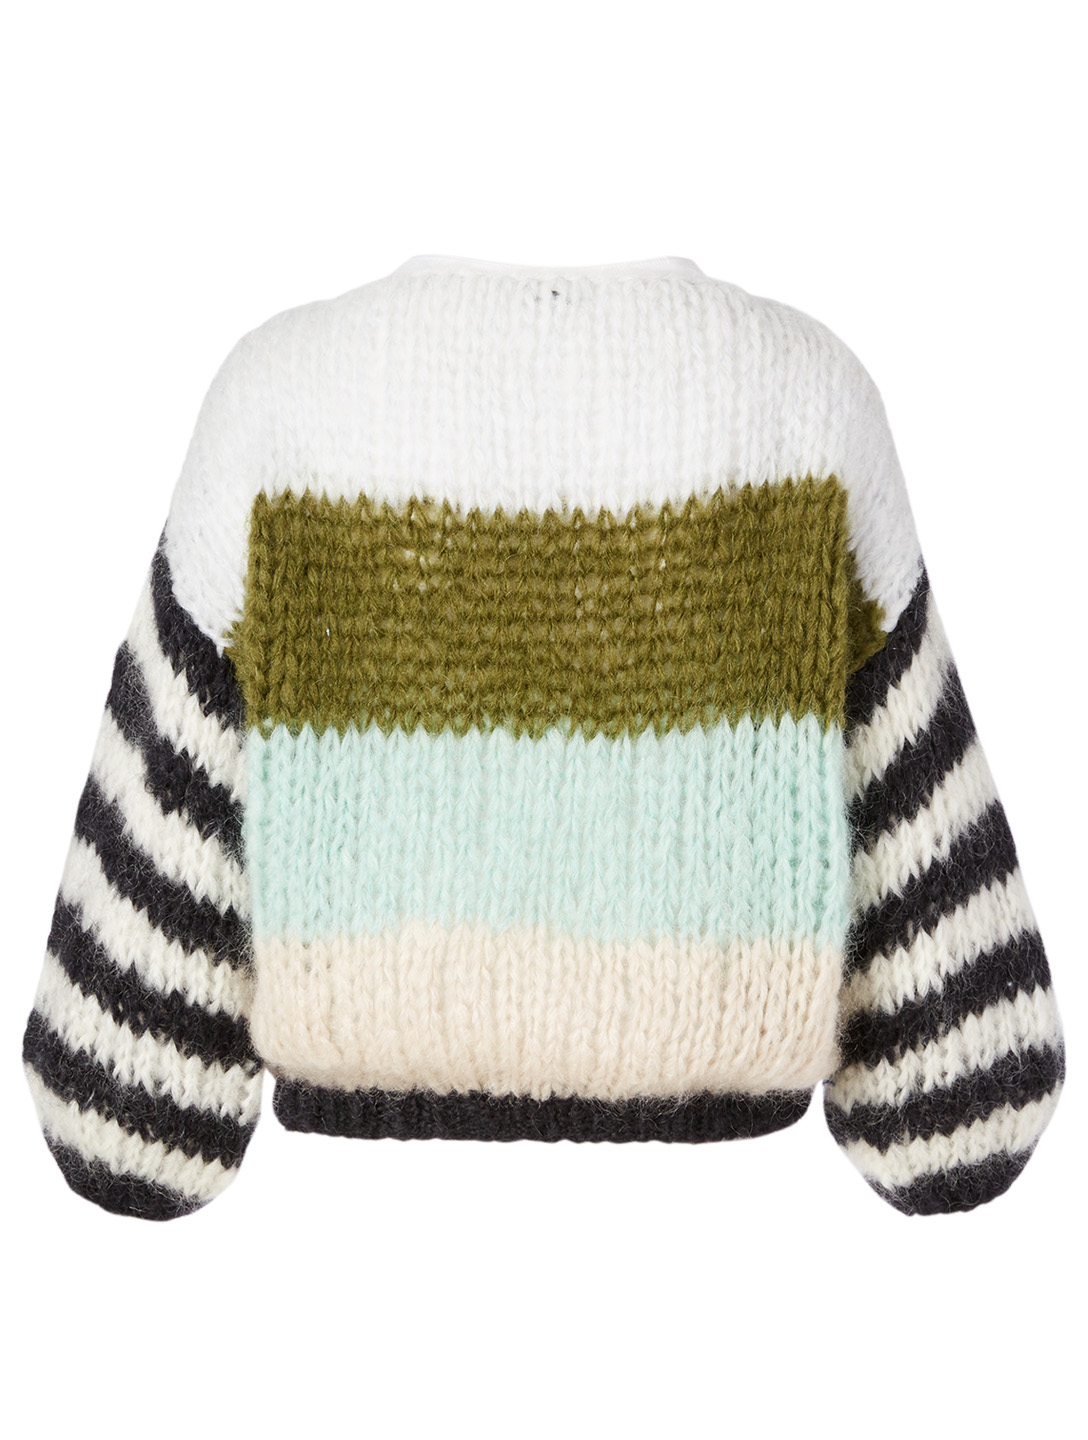 MAIAMI Big Mohair Sweater In Striped Pattern H Project Green